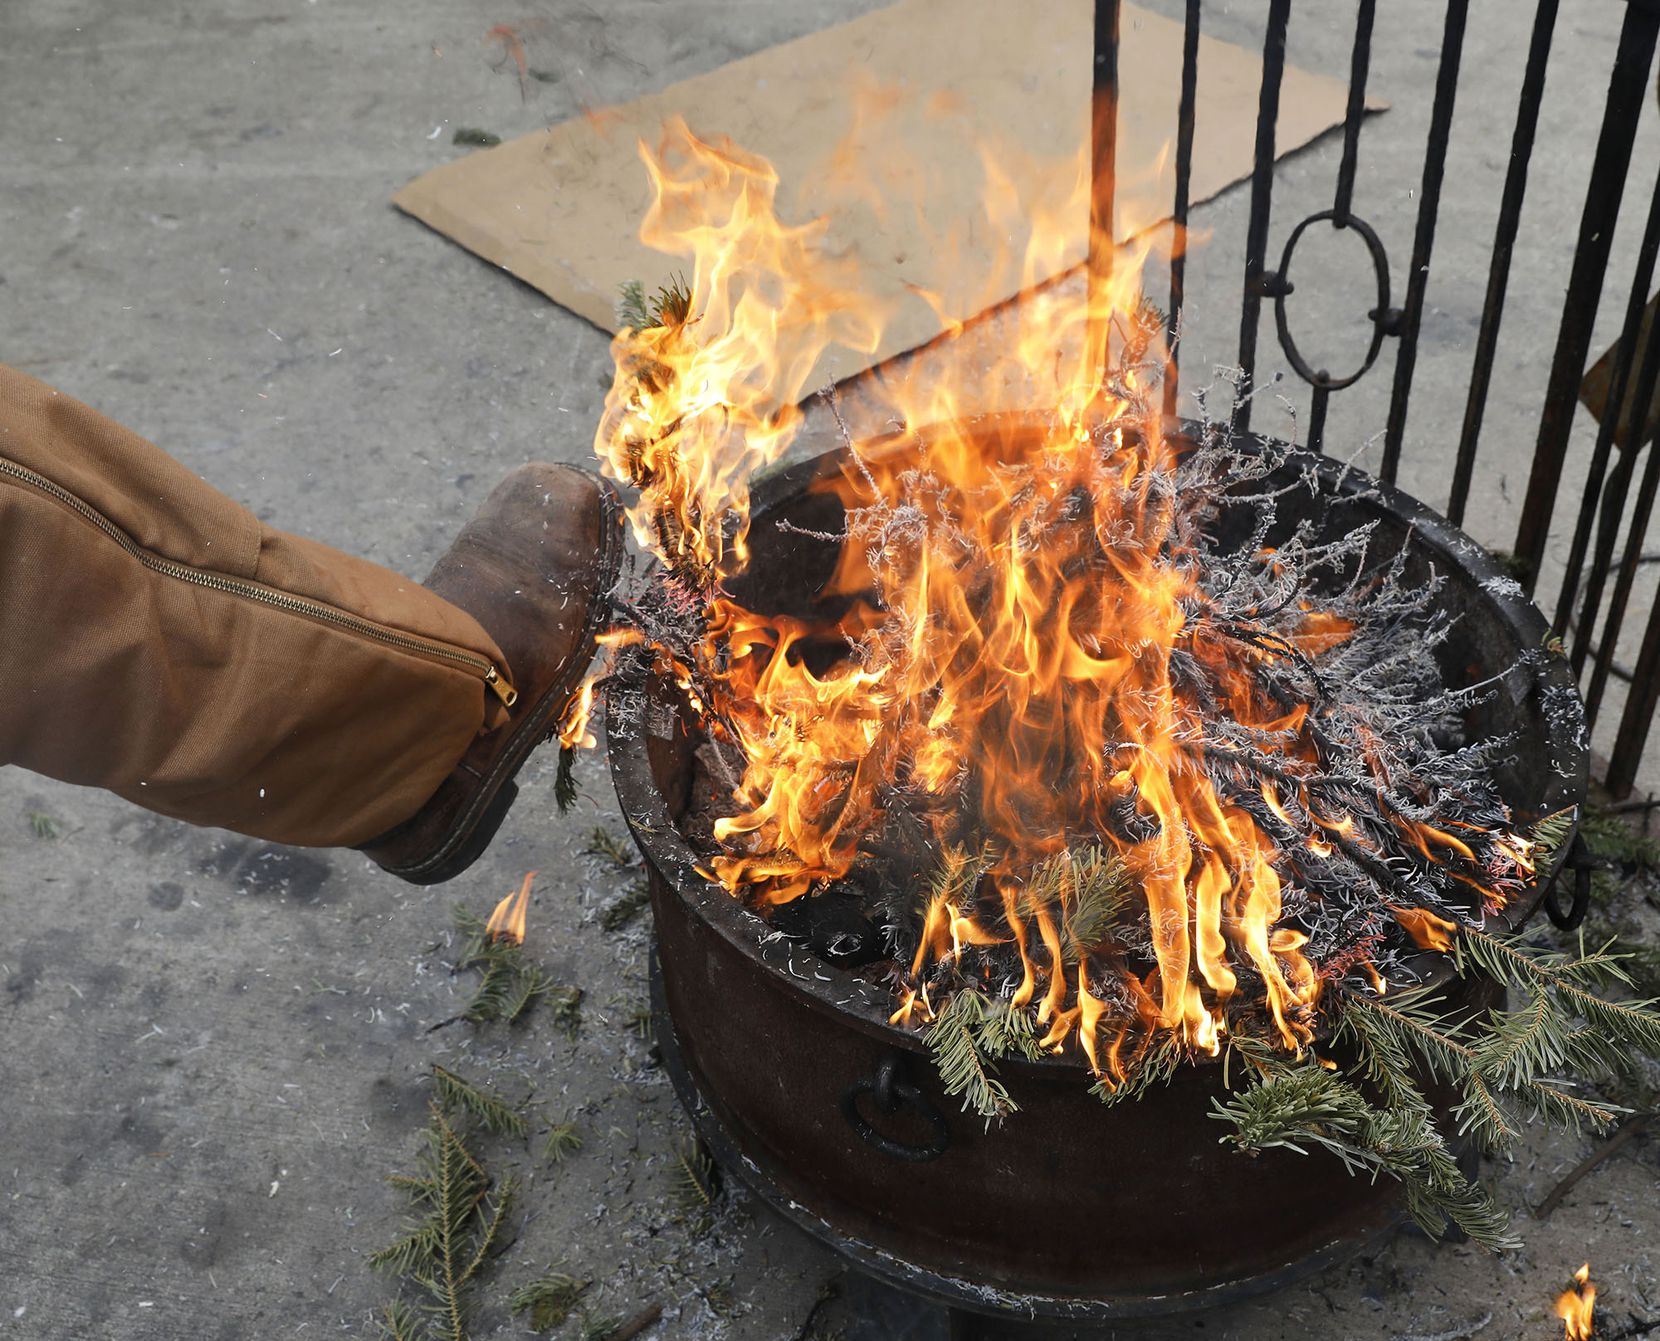 Omar Ibarra, 16, keeps warm after putting old Christmas tree branches on a fire at Ruibal's Plants of Texas on Tuesday in downtown Dallas.